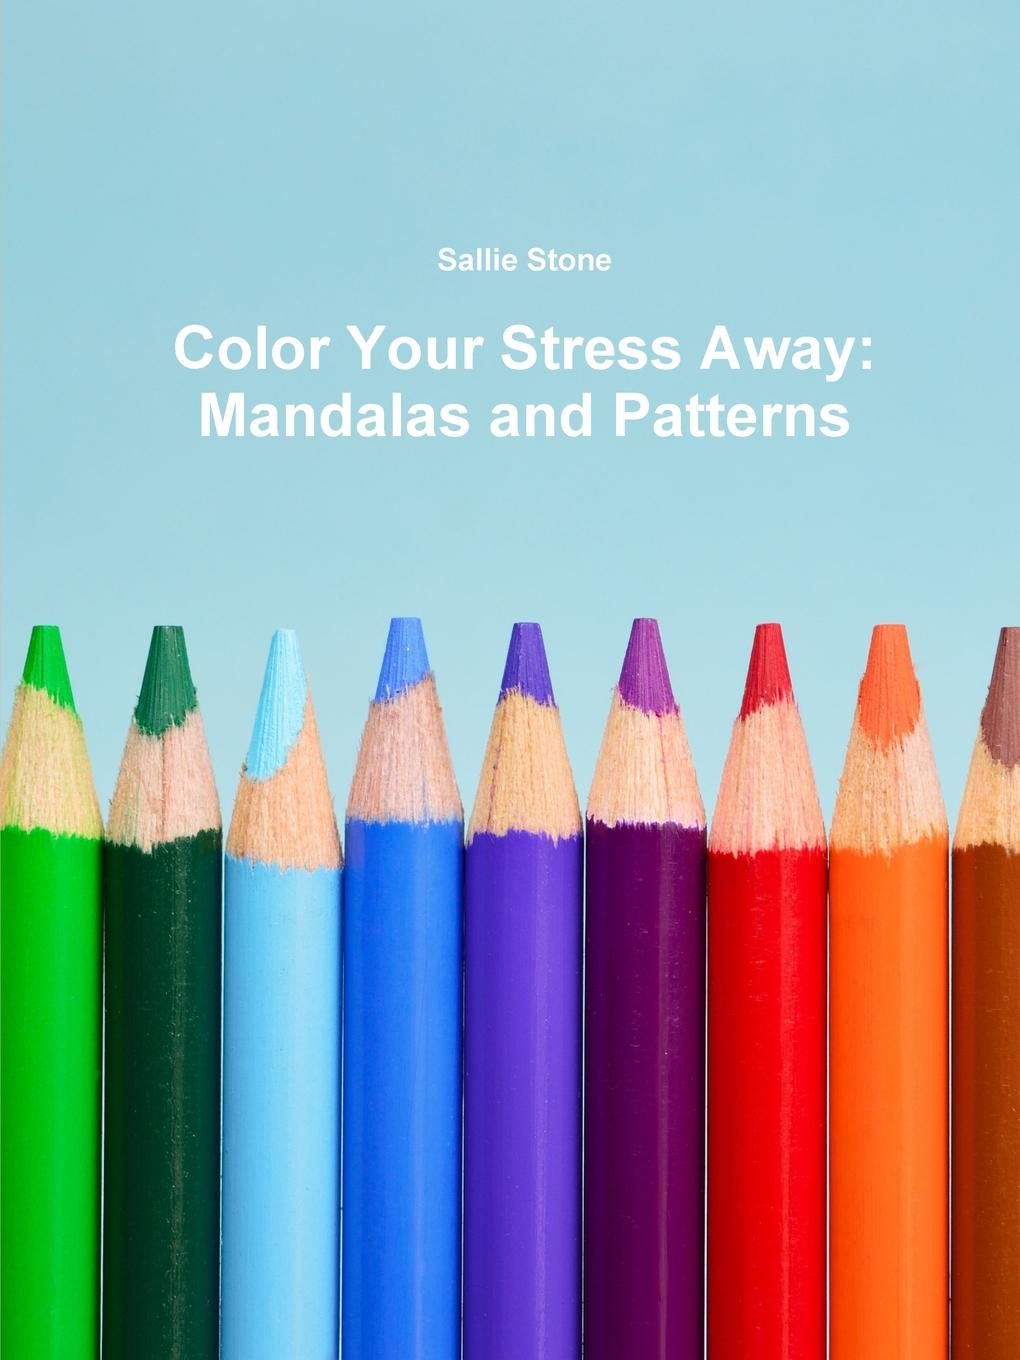 Sallie Stone Color Your Stress Away. Mandalas and Patterns kaleidoscope living in color and patterns